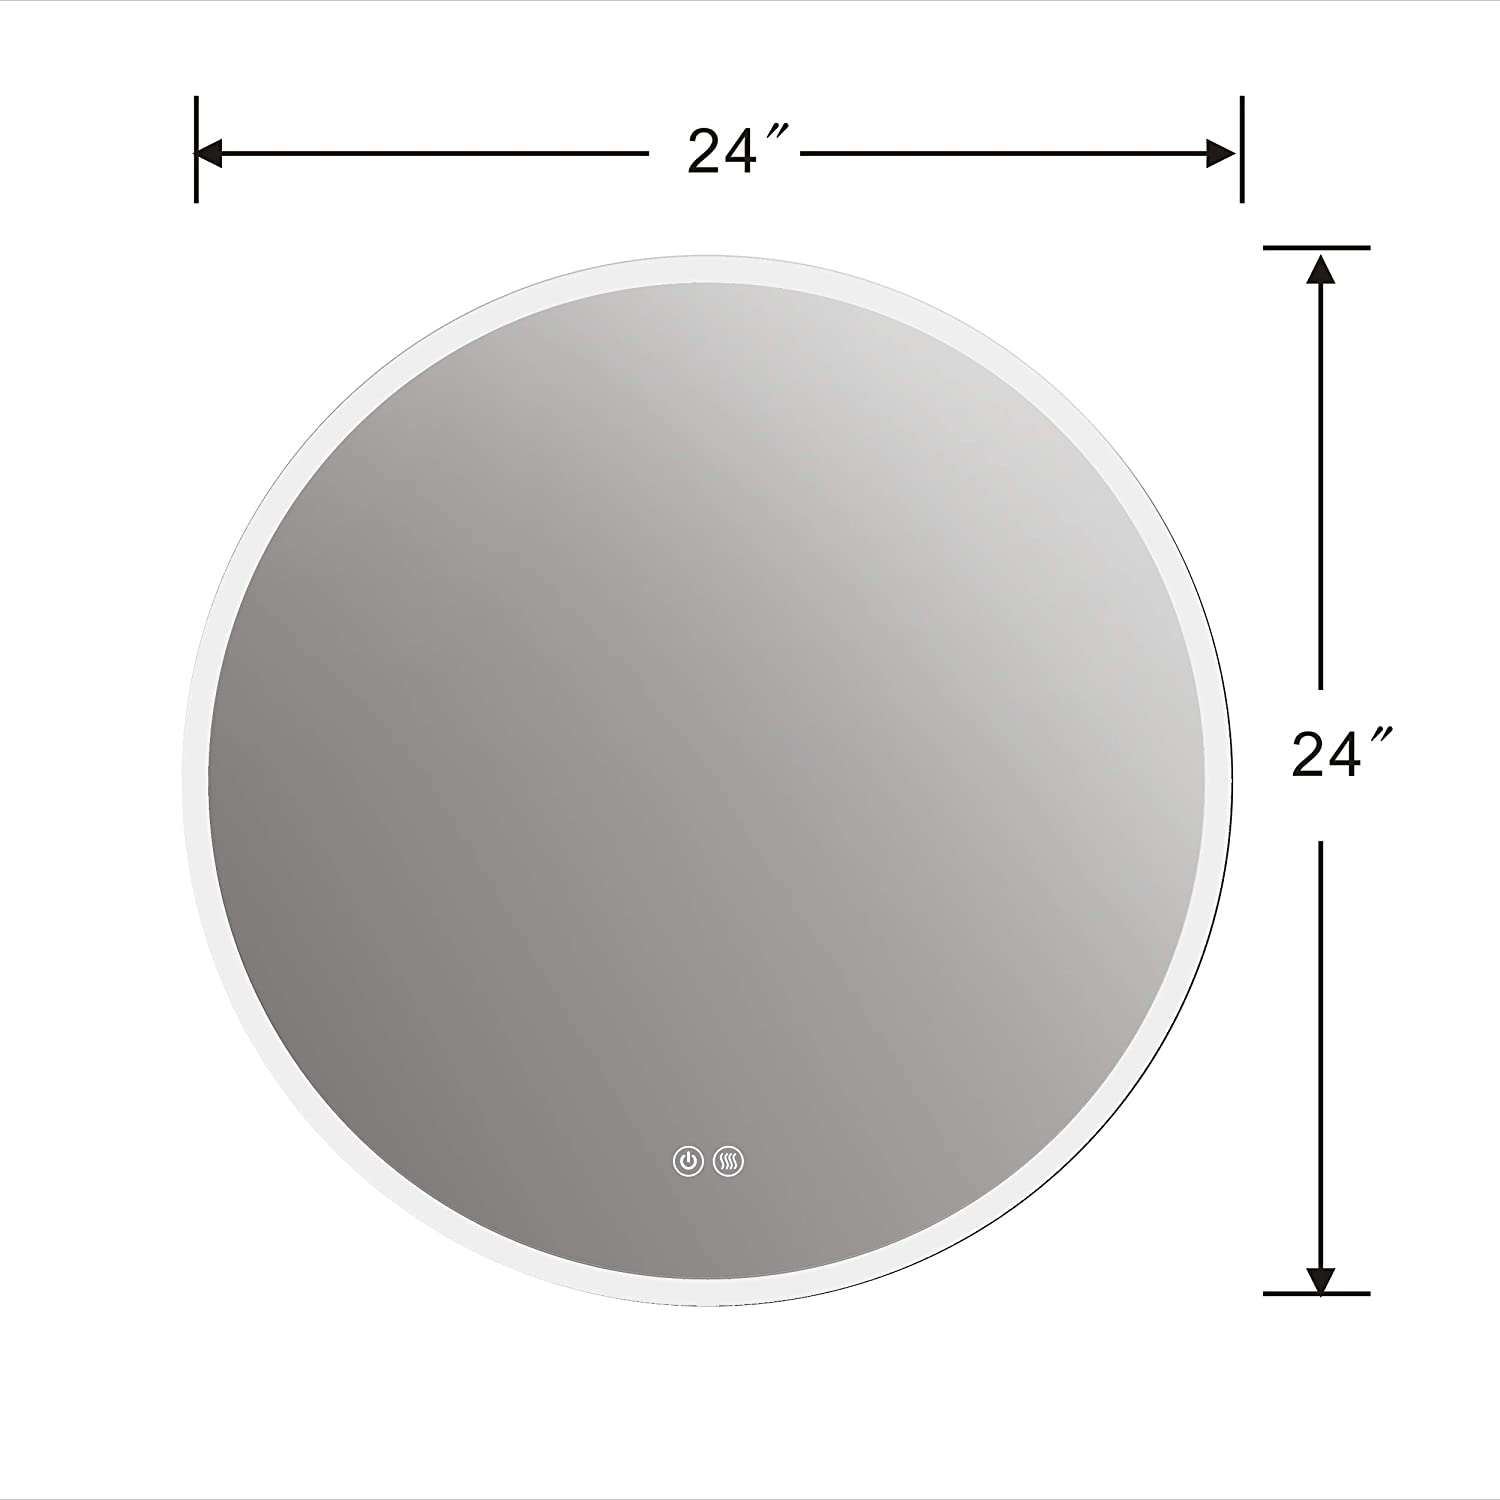 LStripM Bathroom LED Lighting Mirror R24 With Anti-fog Function Wall Mounted Backlit Thickness 5MM Round Dimmable Touch Button 6000k Cold White Makeup Vanity Mirror Over Cosmetic Bathroom Sink